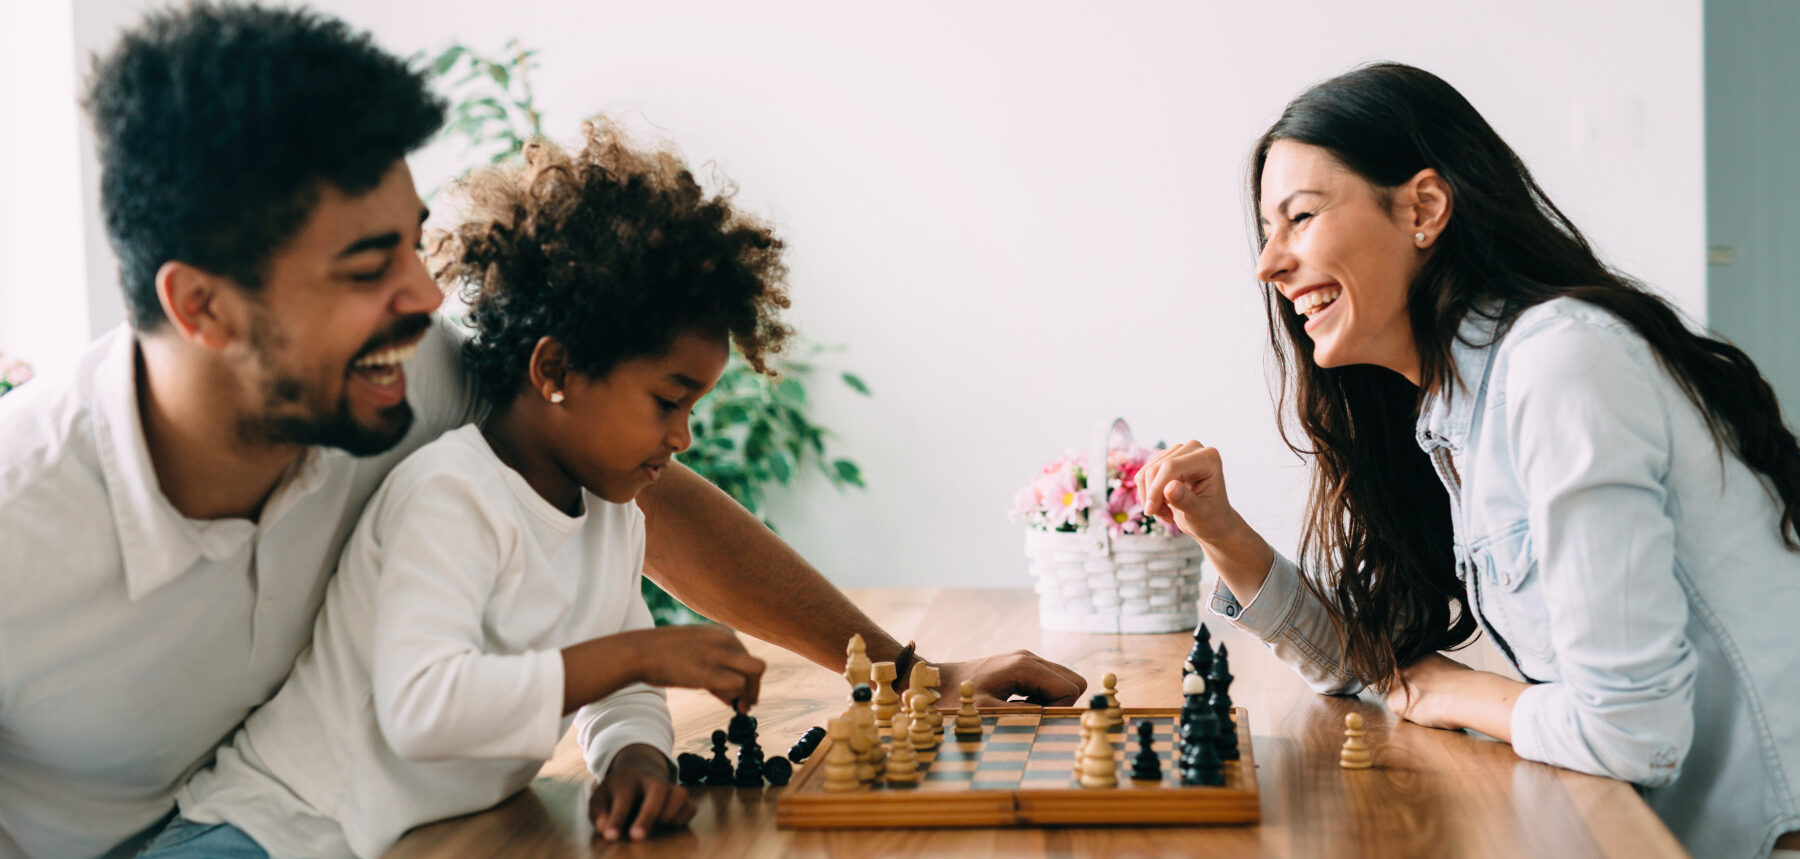 Family Playing Chess as Alternative to Digital Entertainment